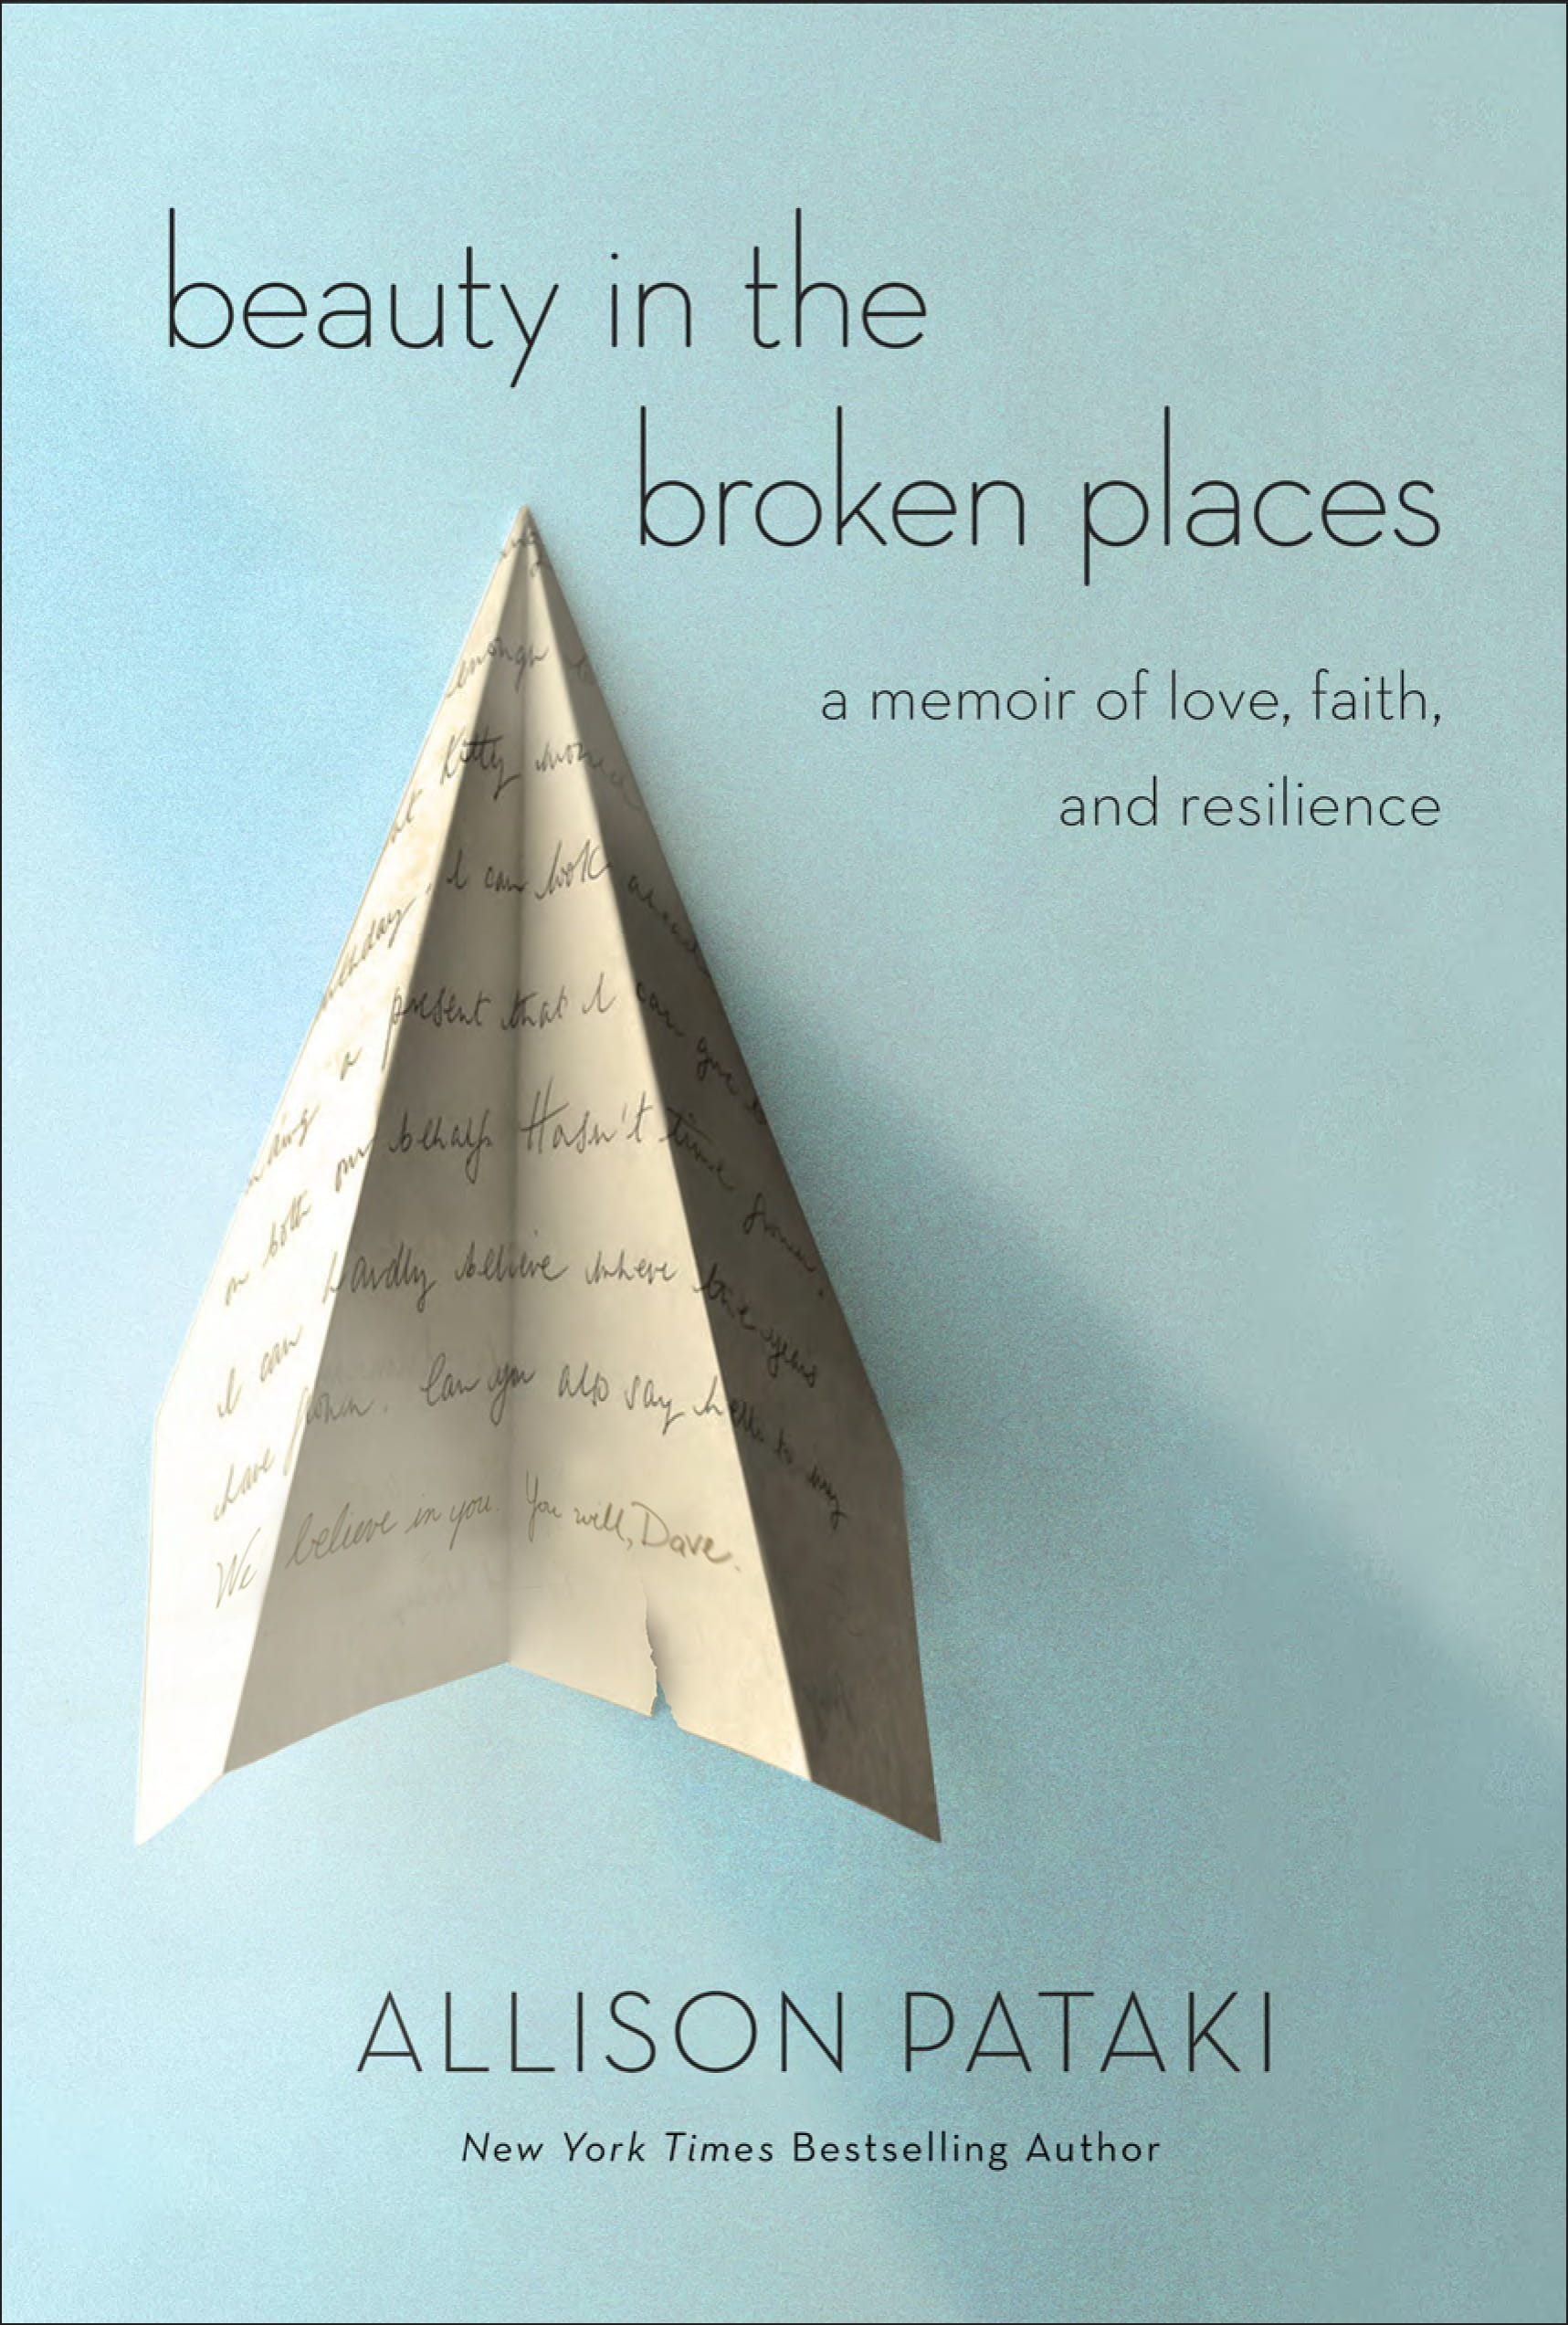 Beauty in the Broken Places, a memoir by Dave Levy's wife Allison Pataki.